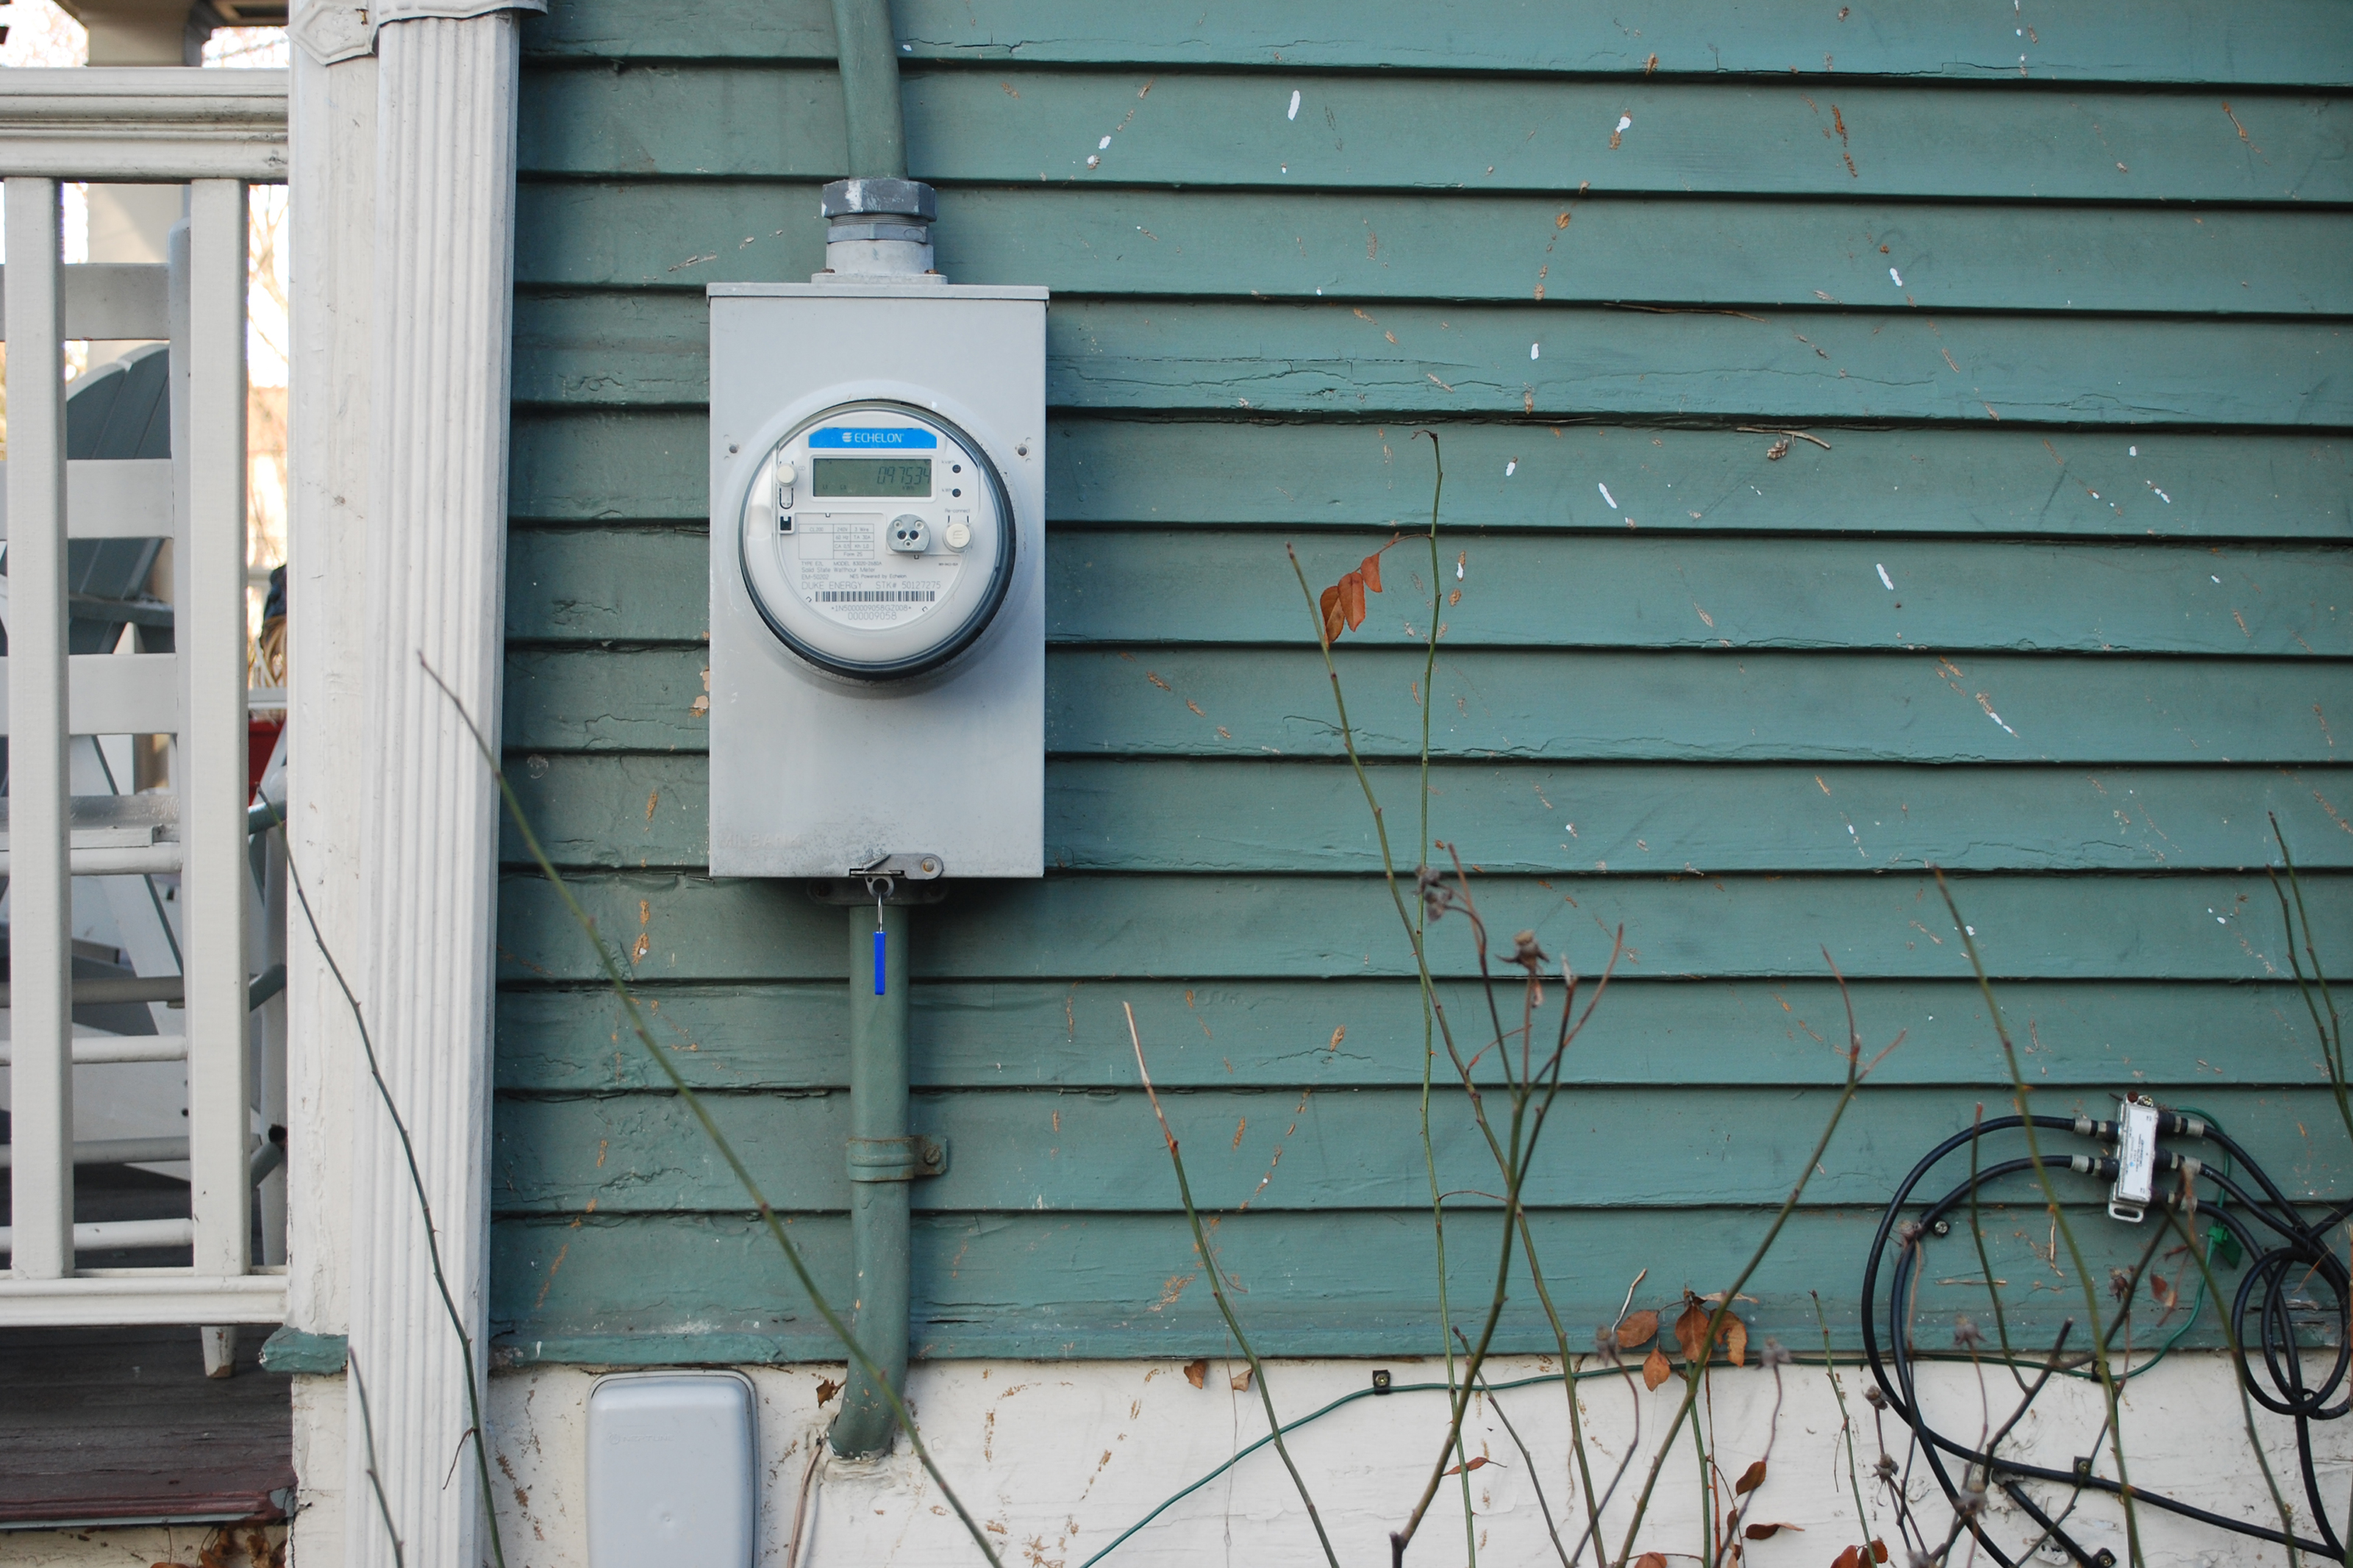 Energy meter outside of a home